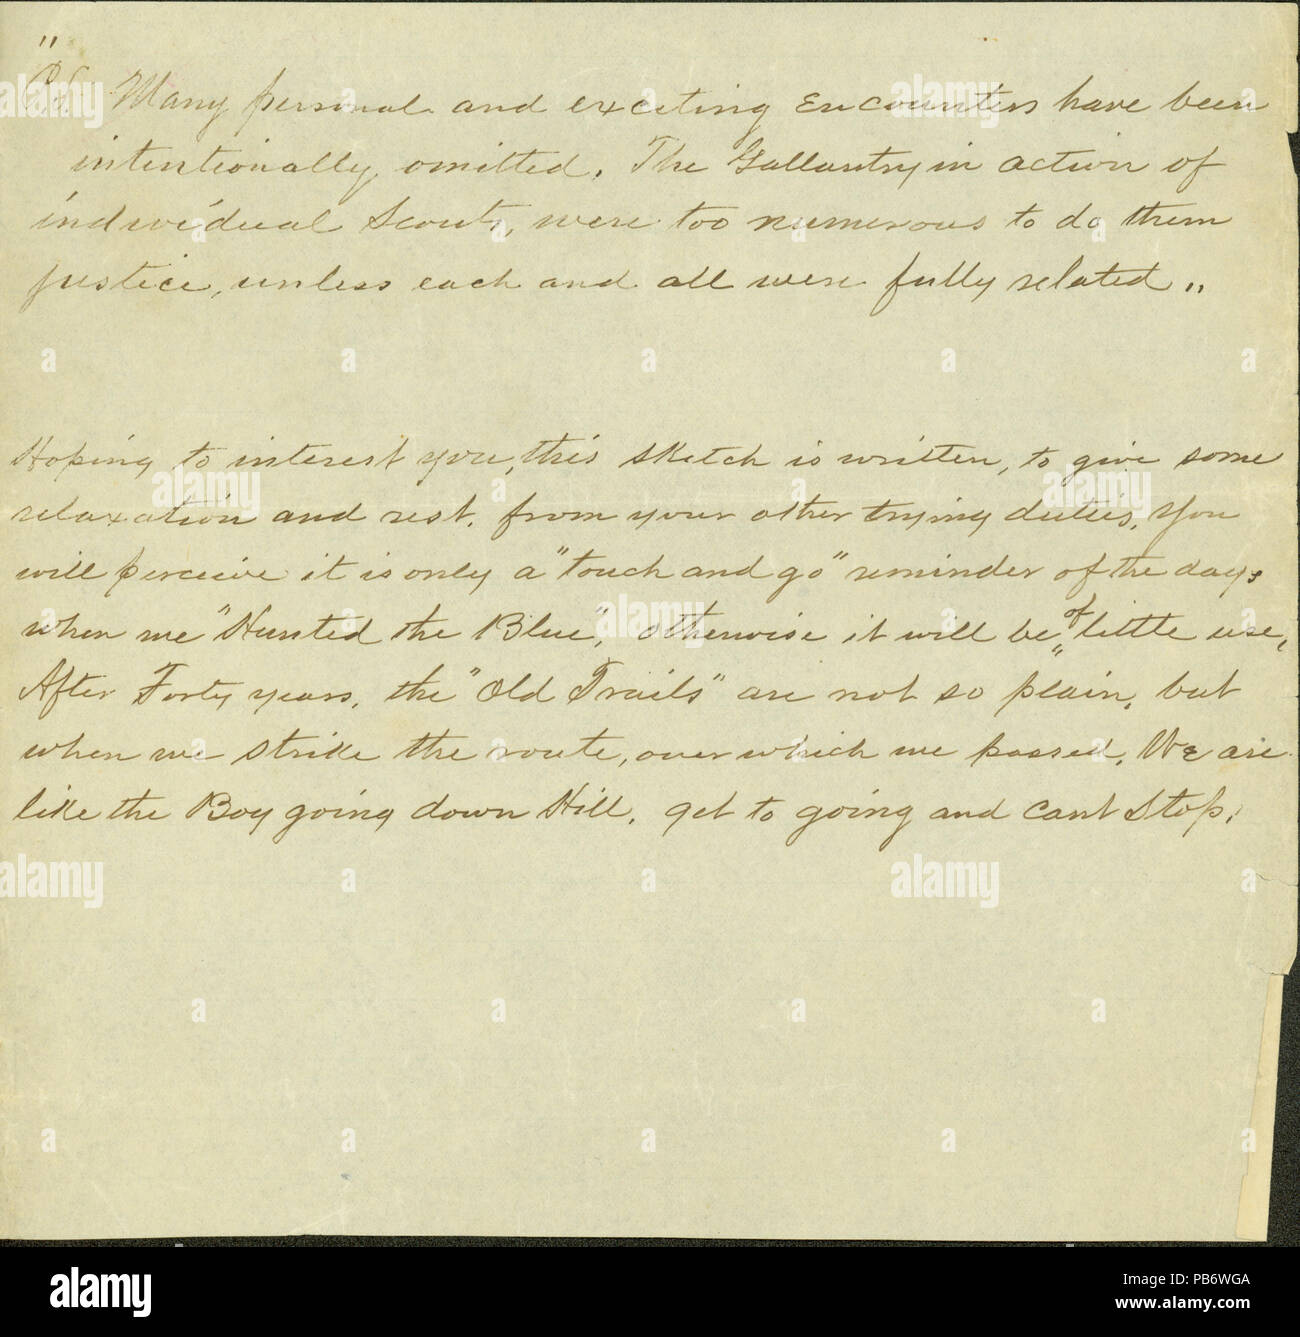 1792 Unsigned note of a a Confederate veteran regarding a reminiscence about the Civil War, ca. 1905 - Stock Image